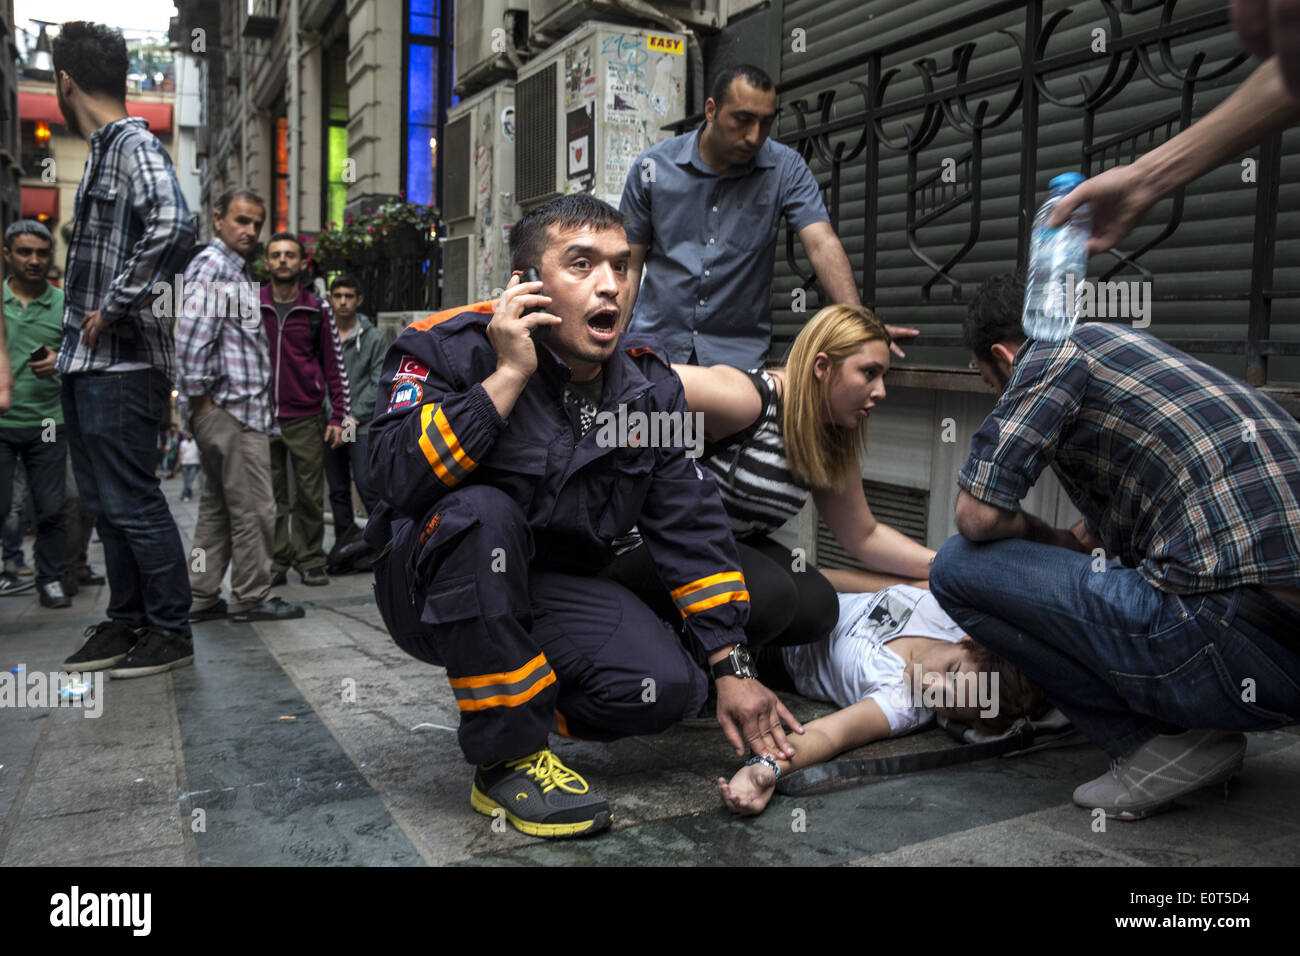 Istanbul, Turkey. 17th May, 2014. A medic calls for help after a girl fell ill and had difficulty breathing when police fired tear gas at protesters on May 17, 2014 in Istanbul. Anger has been mounting across the country regarding the government's handling and responsibility in the Soma mine accident, the worst in Turkey's history, which killed at least 300 miners. PHOTO BY JODI HILTON/NURPHOTO © Jodi Hilton/NurPhoto/ZUMAPRESS.com/Alamy Live News - Stock Image